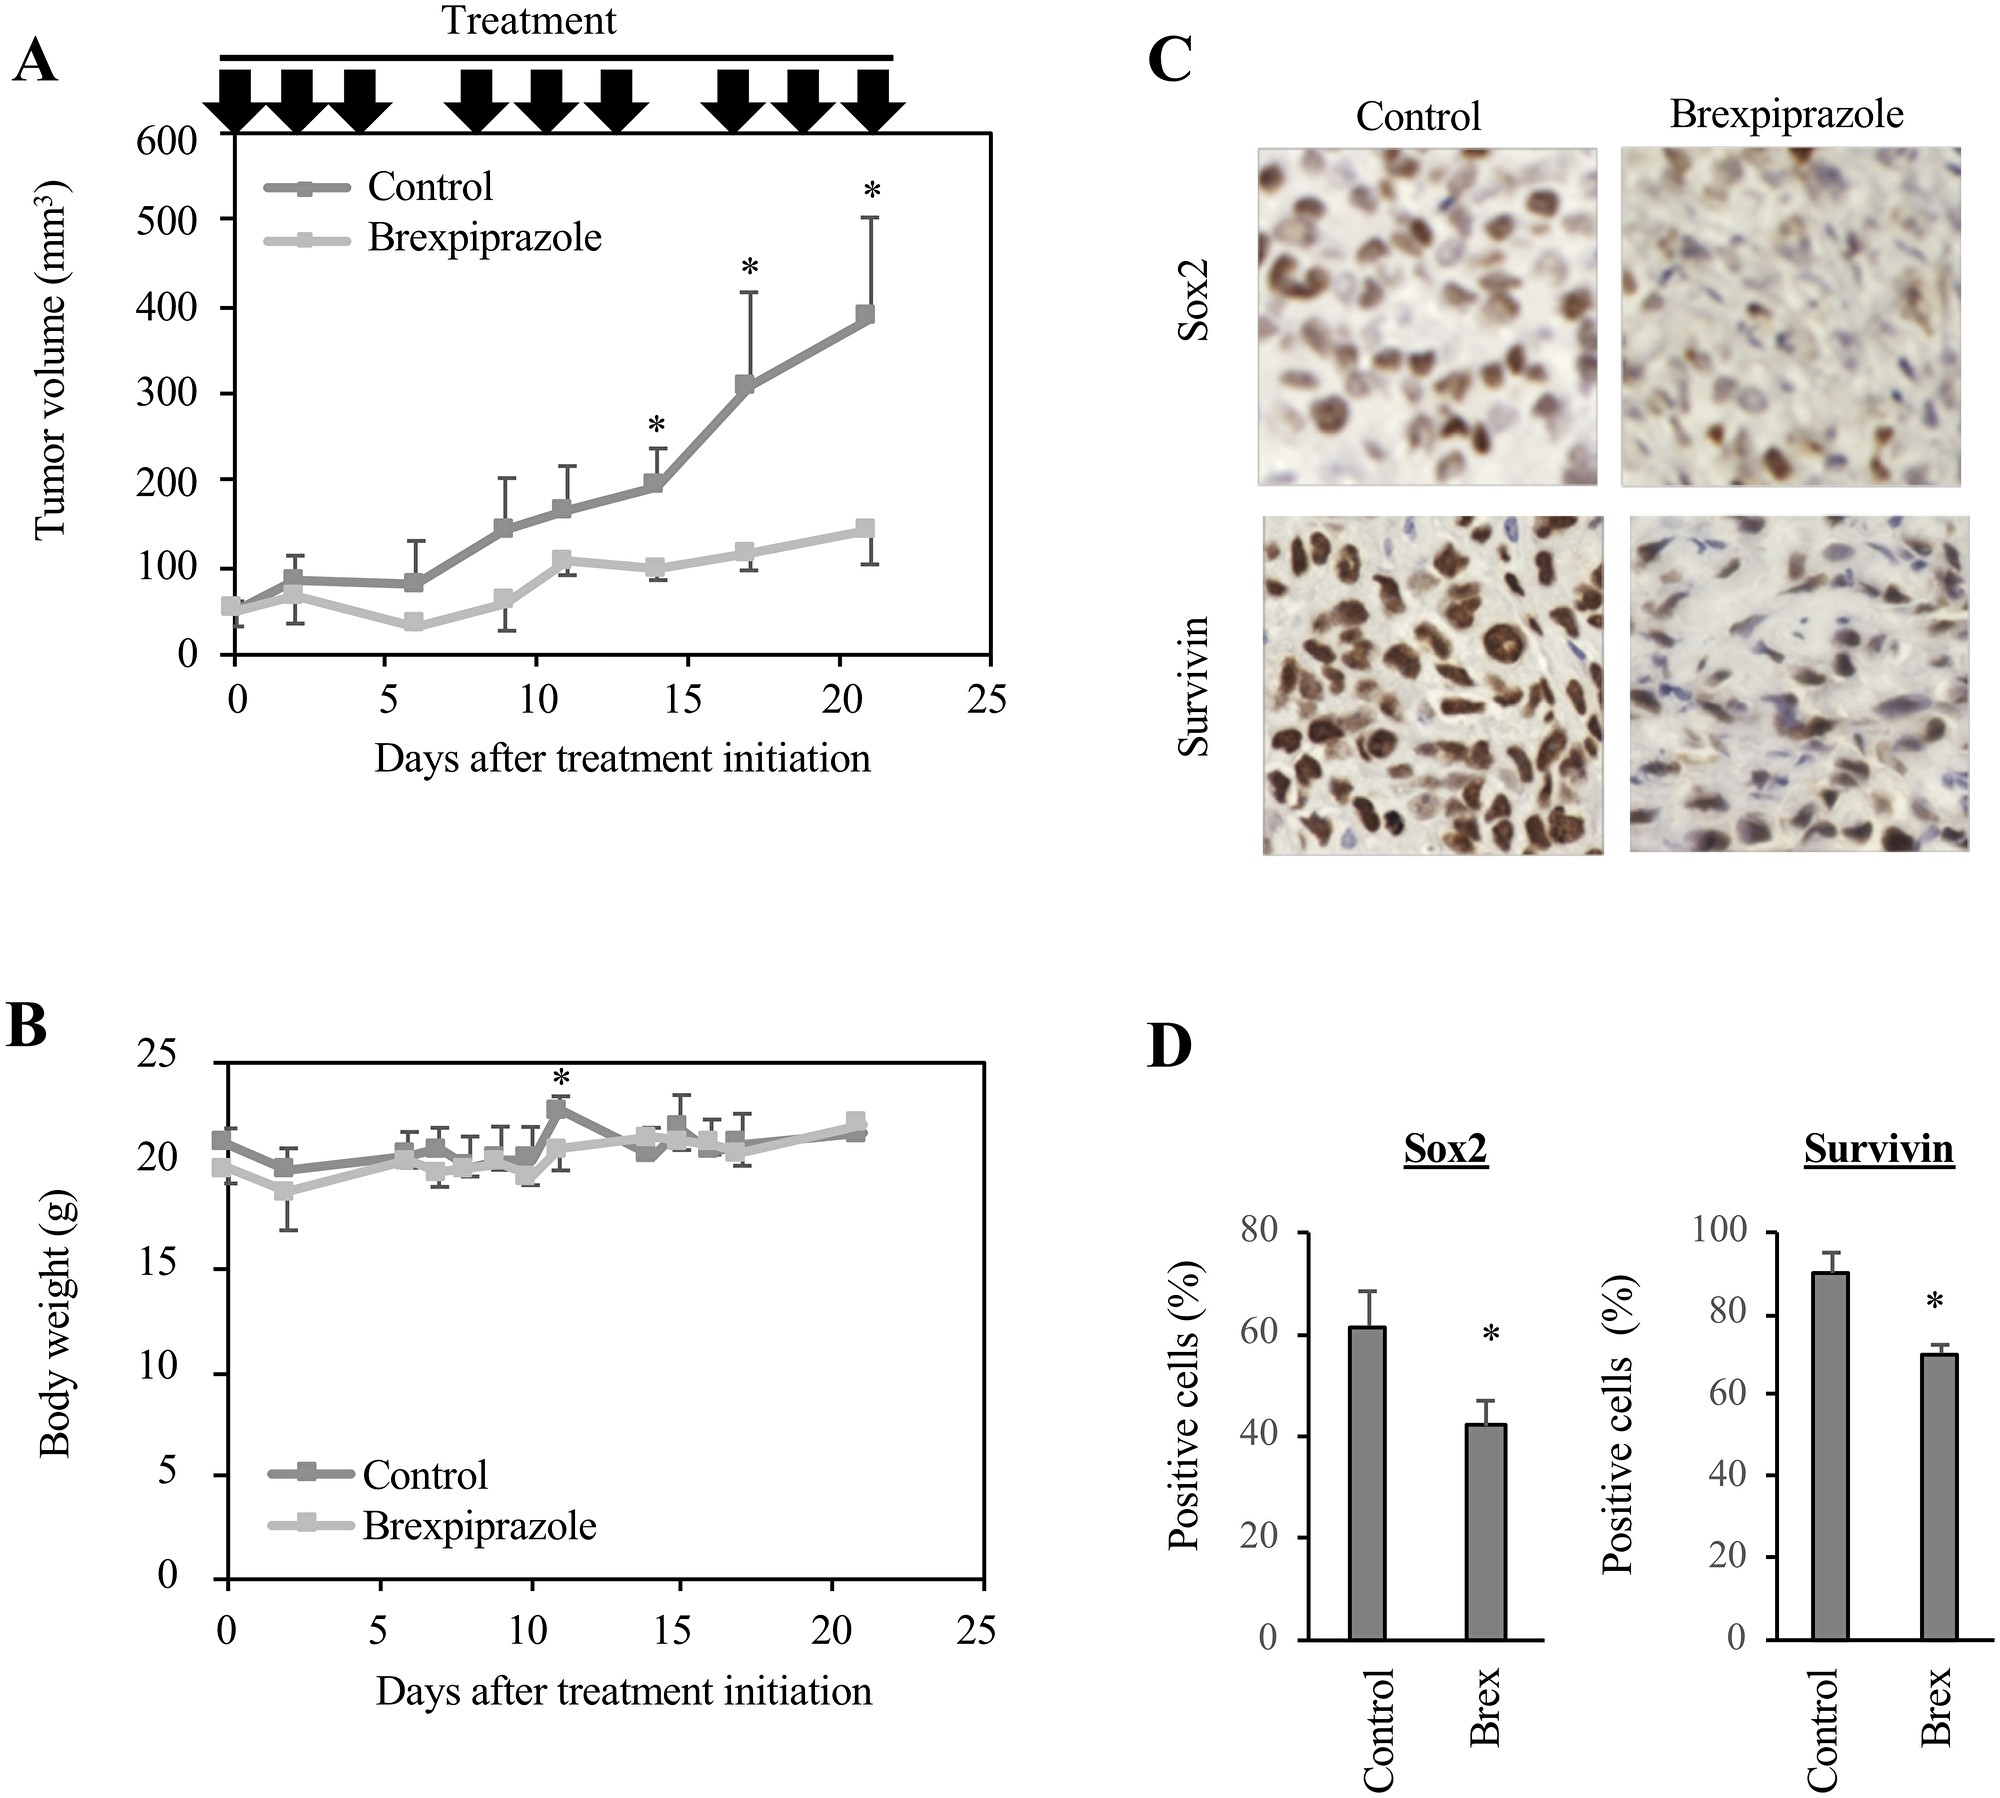 Brexpiprazole suppresses tumor growth in vivo and reduces the expression of Sox2 and survivin.